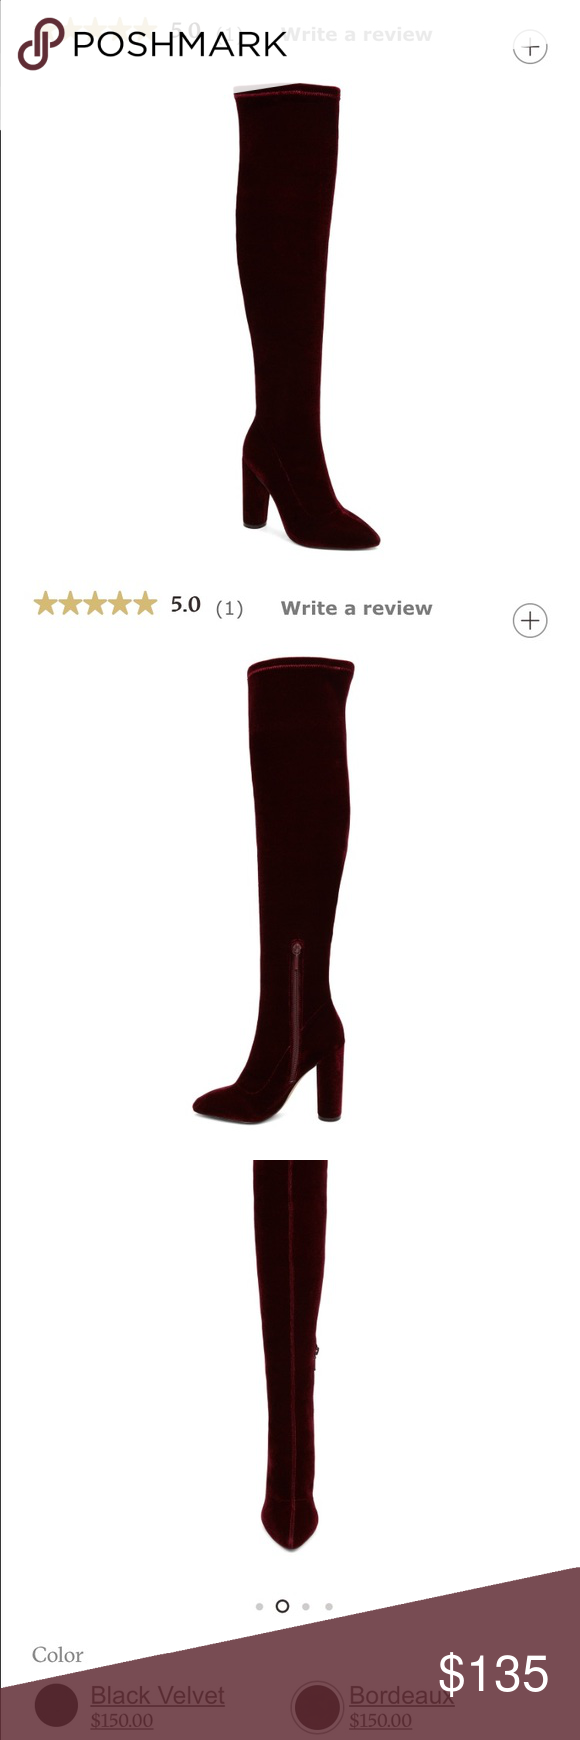 NEW ALDO Slyvana boots New item from ALDO. Brand new, just tried on. Over the knee boots in burgundy (Bordeaux). Perfect for the holidays/ New Years! Stretchy leg fabric so perfect for all sizes. If you usually have trouble finding something to fit your calf, these are perfect for you! Aldo Shoes Over the Knee Boots